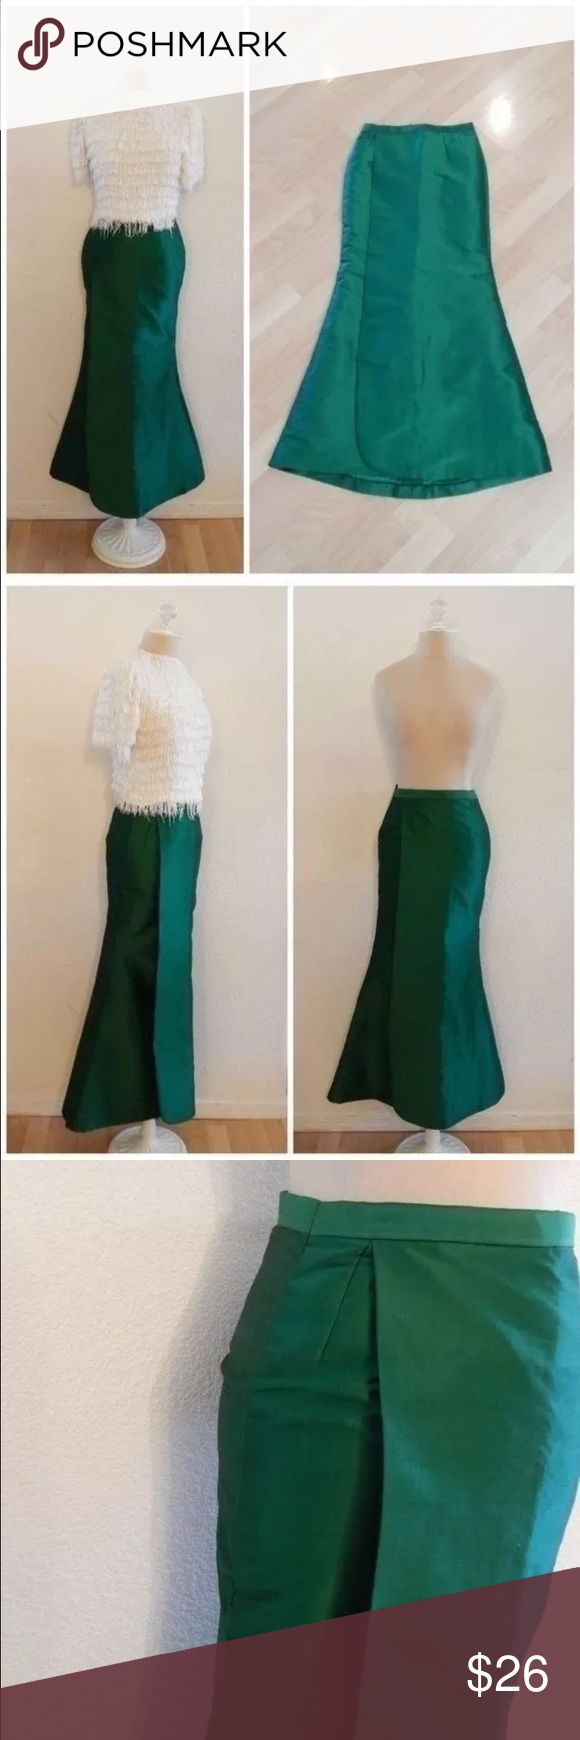 """Emerald Green Mermaid Flair Bottom Maxi Skirt Vintage High Low Hem Emerald Green Mermaid Flair Fitted Wrap Floor Length Formal Costume Skirt  No tags Rear Invisible Zipper and Eye Hook Closure Estimated Size Range XS (2), Please review actual measurements  Waist circumference: 25"""" Hip circumference: 33"""" Length: 37.5"""" Front / 39.25"""" Rear Thin circumference of """"tail"""" end: 32"""" Thickest circumference bottom of """"tail"""": 50"""" Vintage Skirts Maxi"""